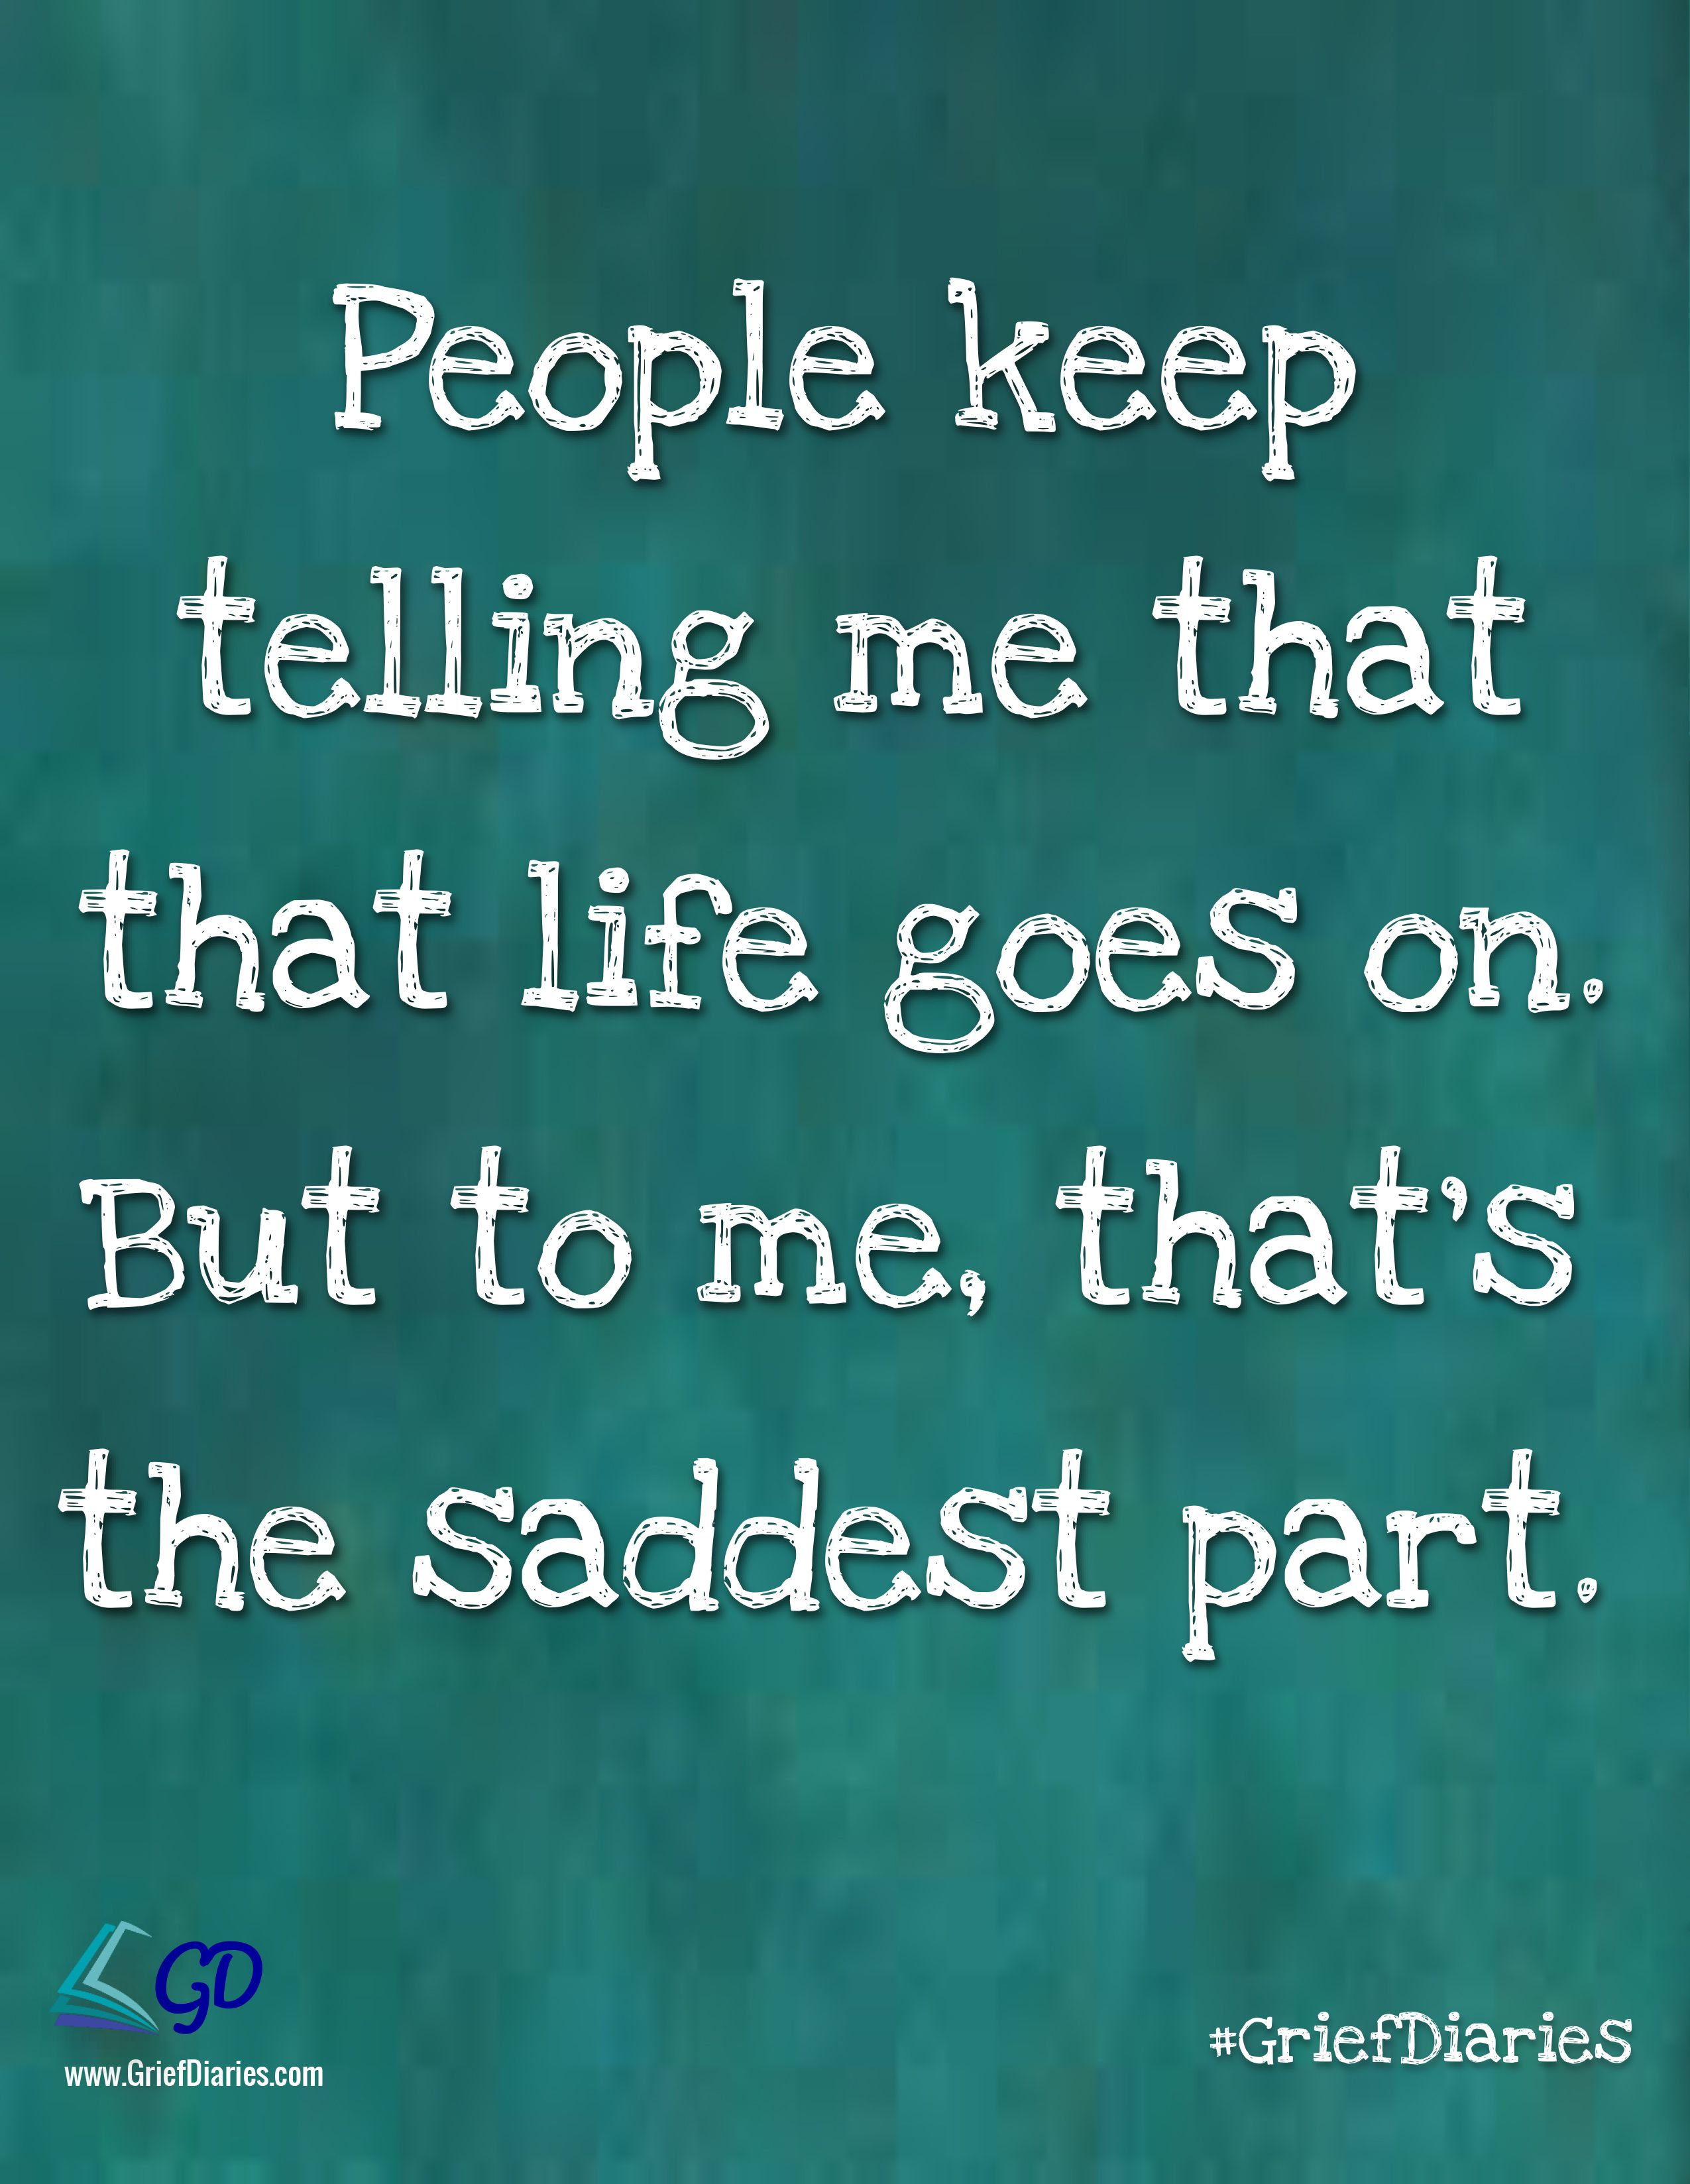 Loss Of Life Quotes Join Us On Pinterest At Www.pinterestgtugriefgriefdiaries